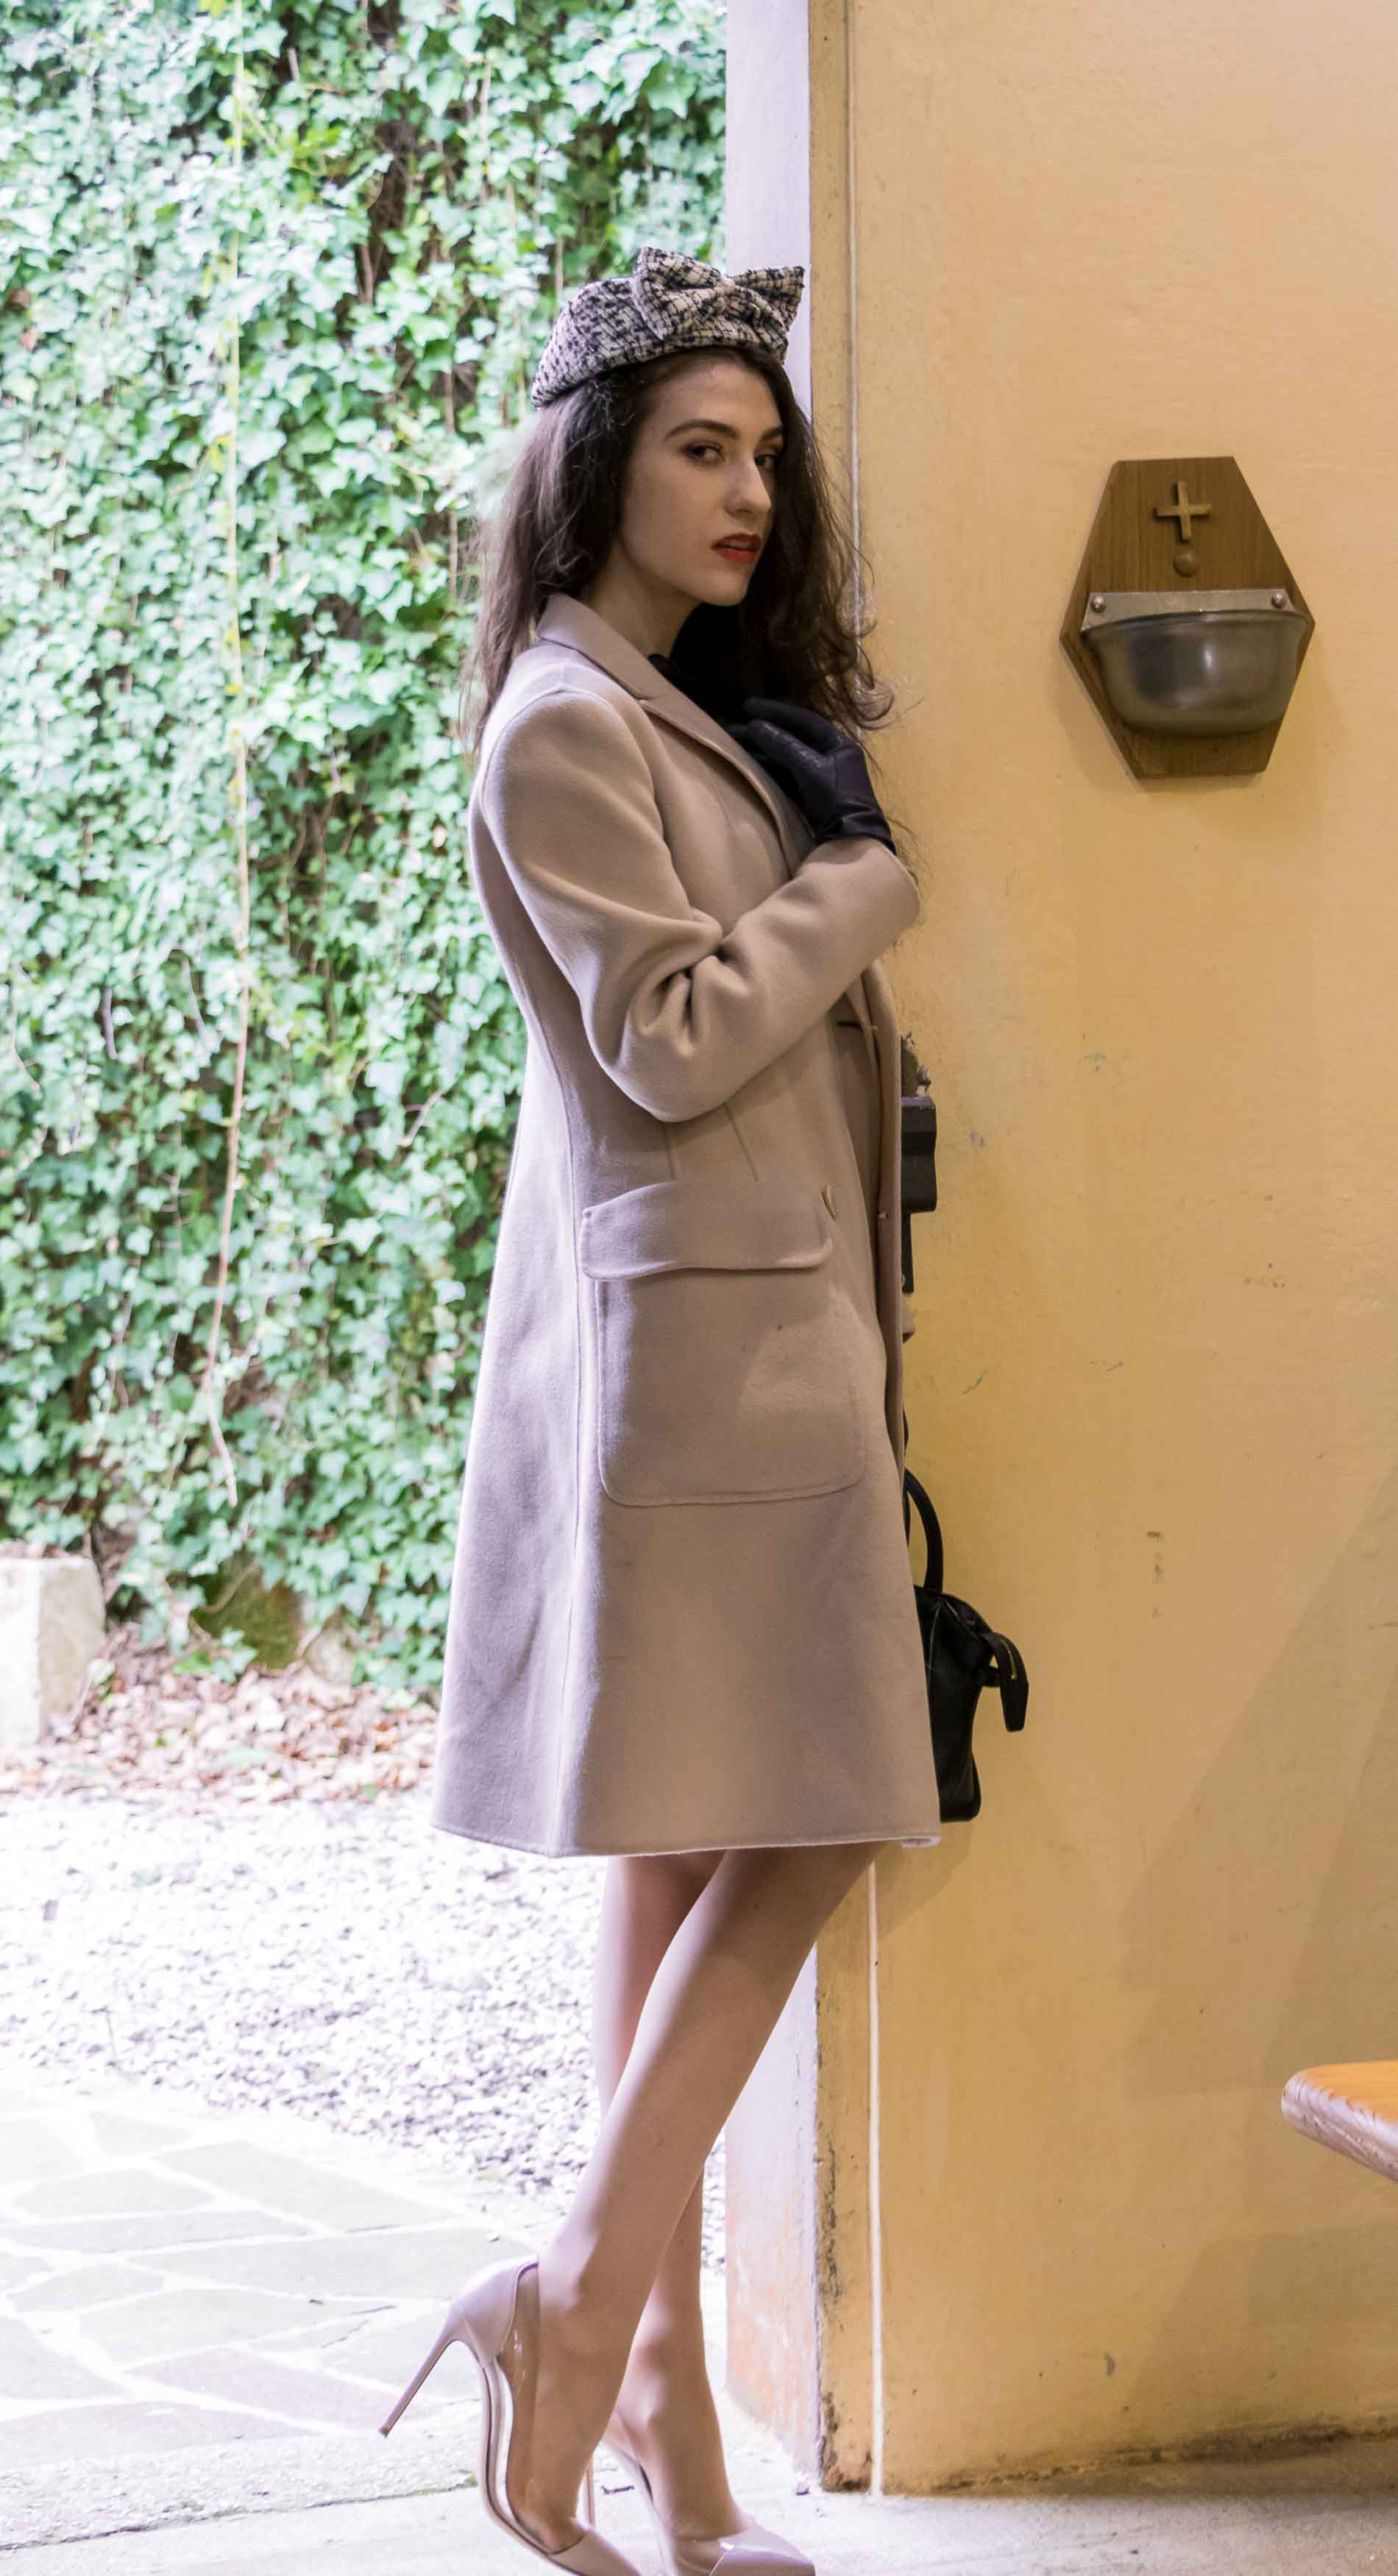 Fashion Blogger Veronika Lipar of Brunette from Wall Street dressed in Weekend Maxmara off-white pastel coat, Gianvito Rossi plexi pumps, small black top handle bag and headpiece to Sunday Mass